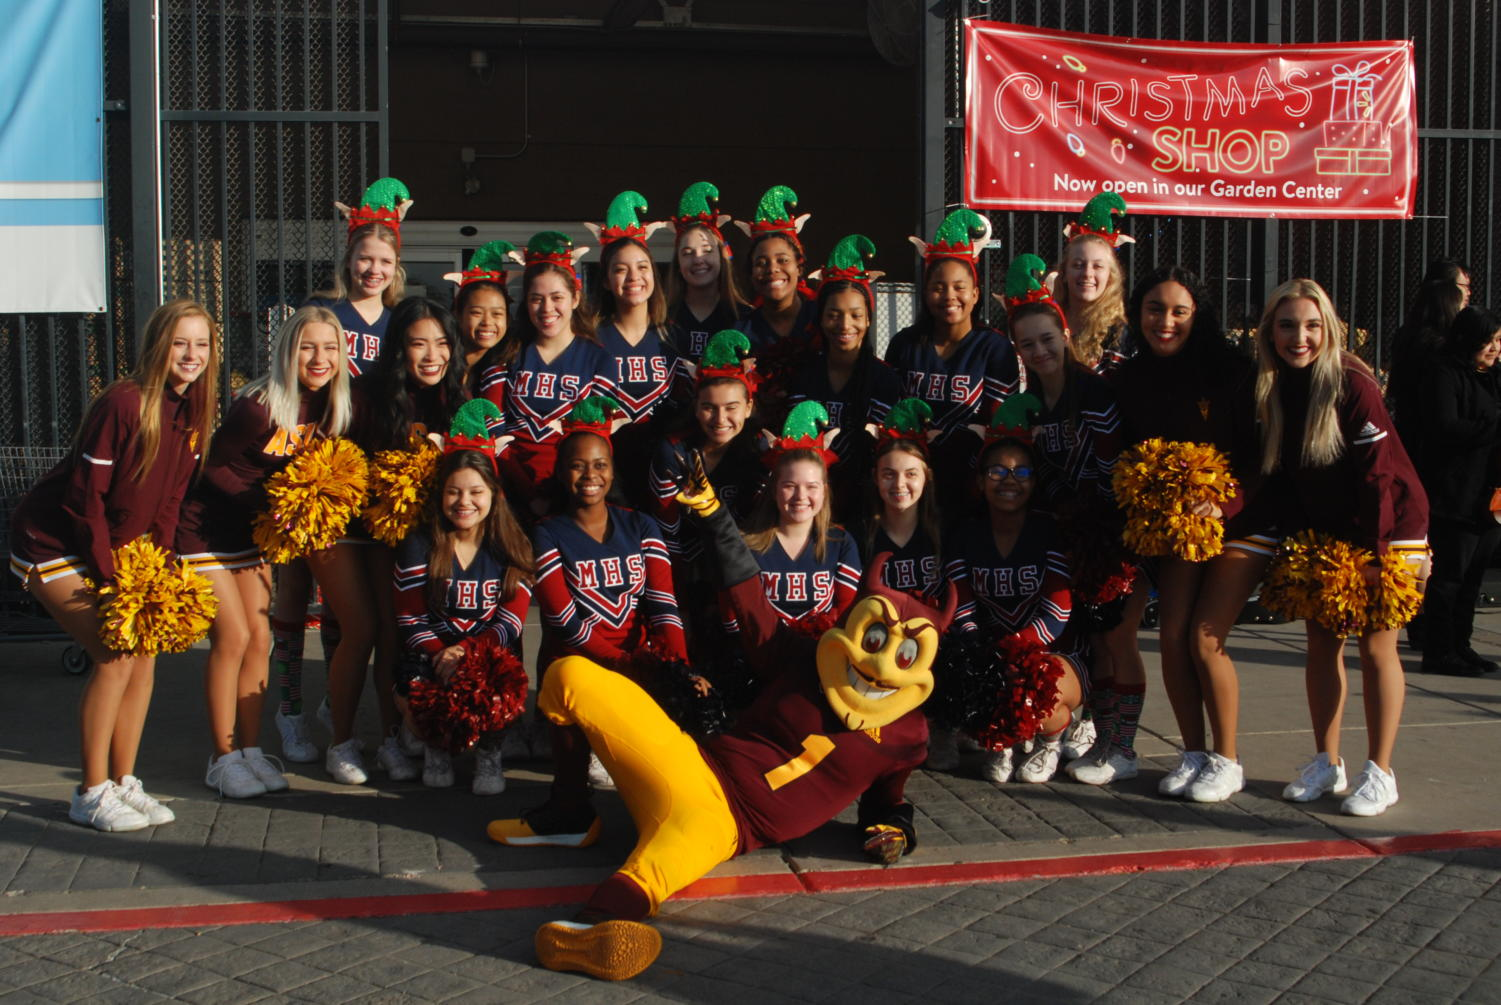 McClintock Varsity Cheer volunteered with Tempe Police in an annual event known as